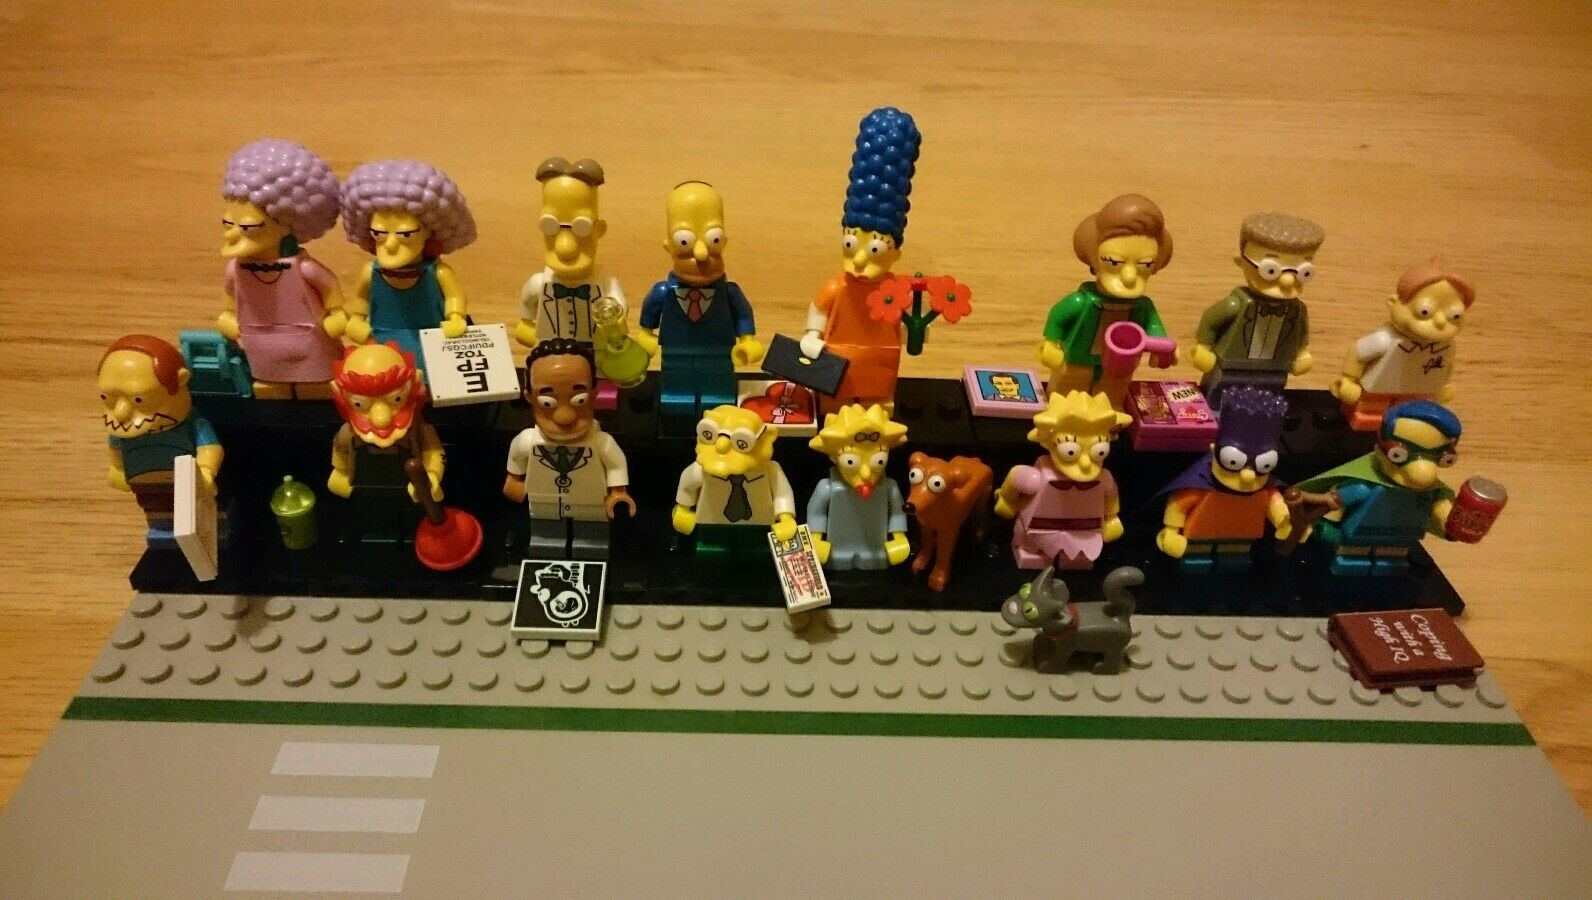 LEGO SIMPSONS MINIFIGURES SERIES 2 - FULL SET, Lego Road base display stand